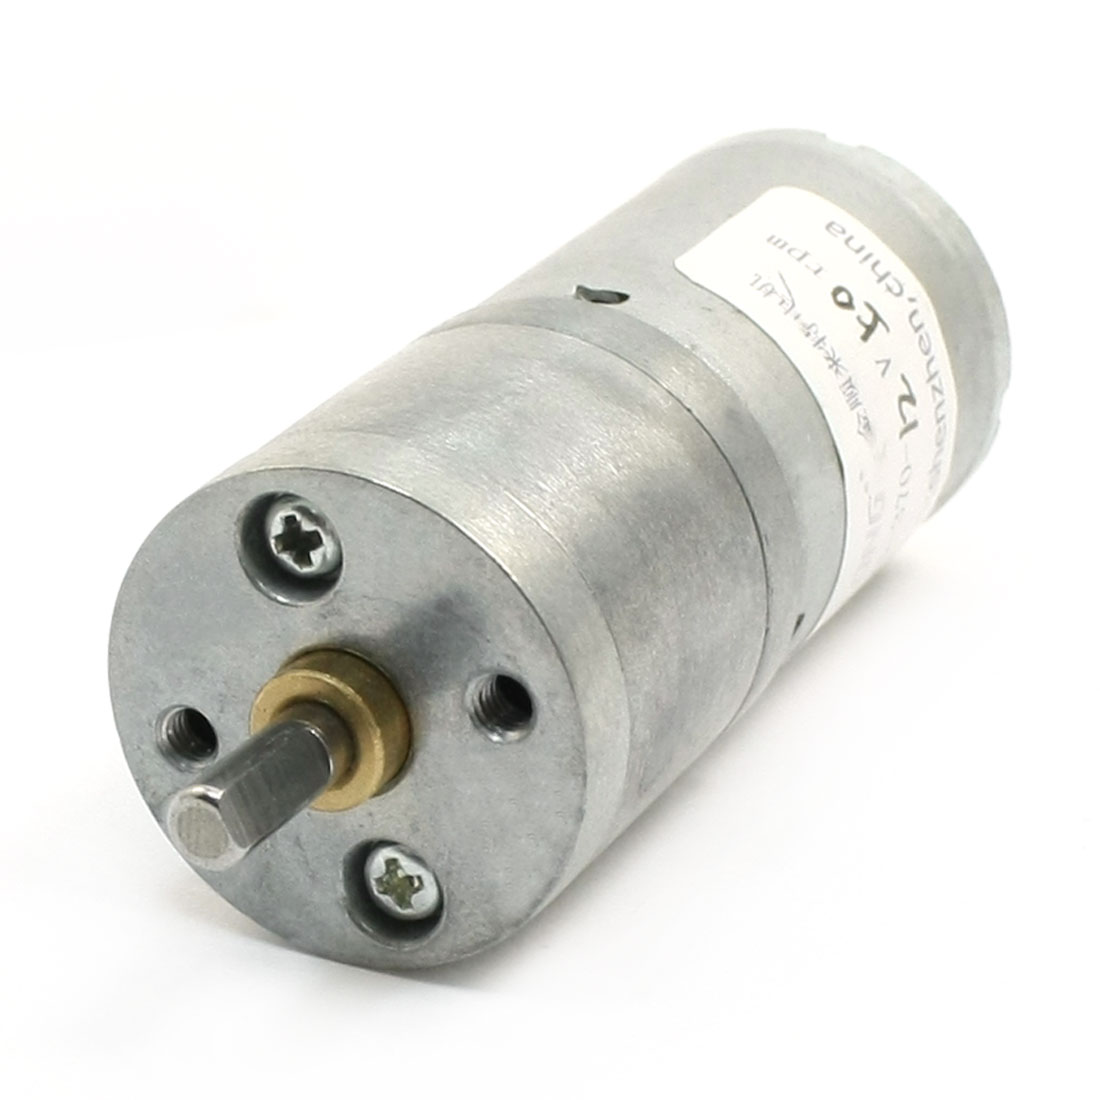 DC12V 240mA 4mm Dia Shaft 50RPM Speed Reducing Geared Motor